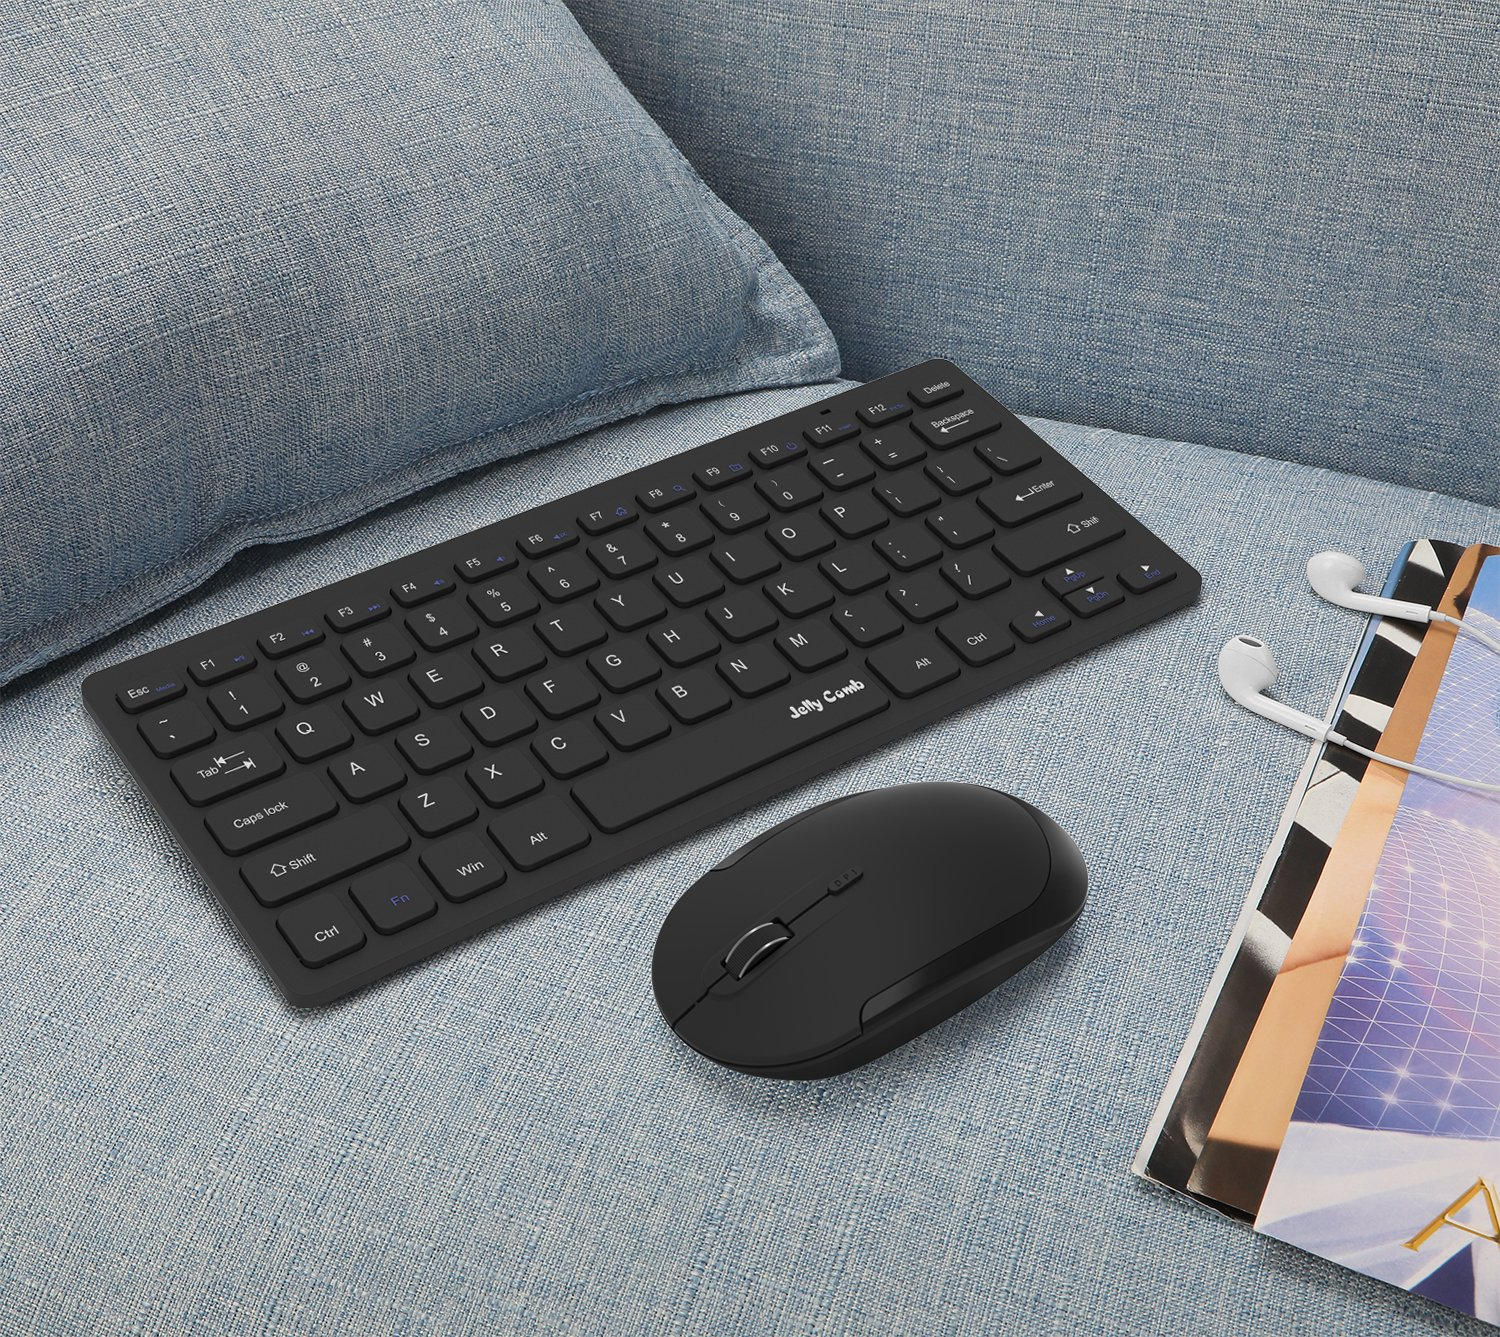 Wireless Keyboard Mouse, Jelly Comb 2.4GHz Ultra Thin Compact Portable SMALL Wireless Keyboard and Mouse Combo Set for PC, Desktop, Computer, Notebook, Laptop, Windows XP/Vista / 7/8 / 10 - Black by Jelly Comb (Image #9)